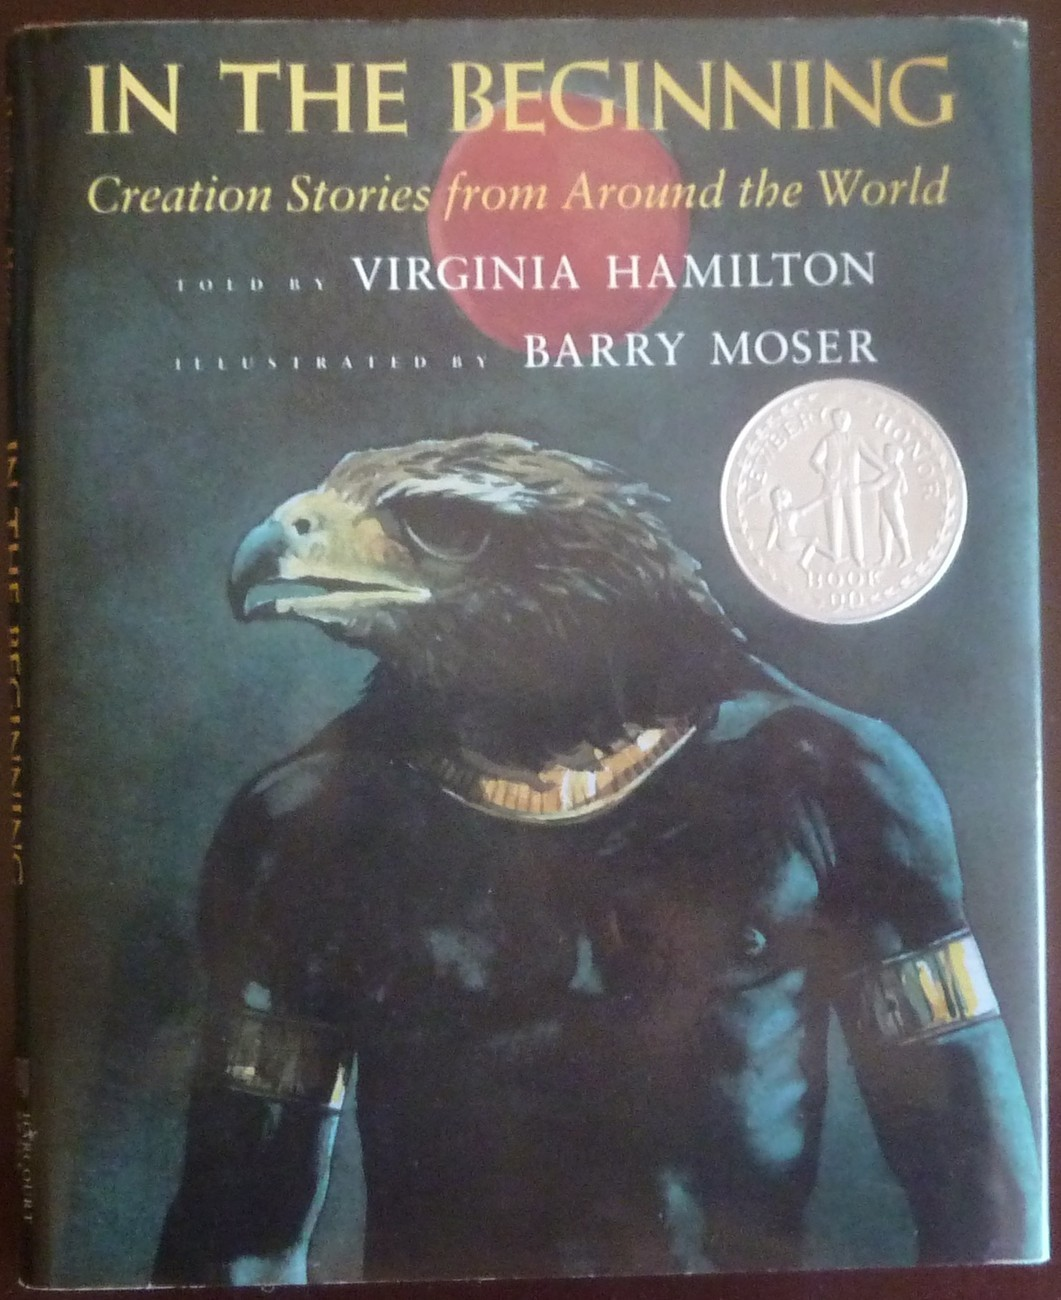 a review of creation myths from around the world Find great deals for primal myths : creation myths around the world by barbara c sproul (1979, paperback, reprint) shop with confidence on ebay.